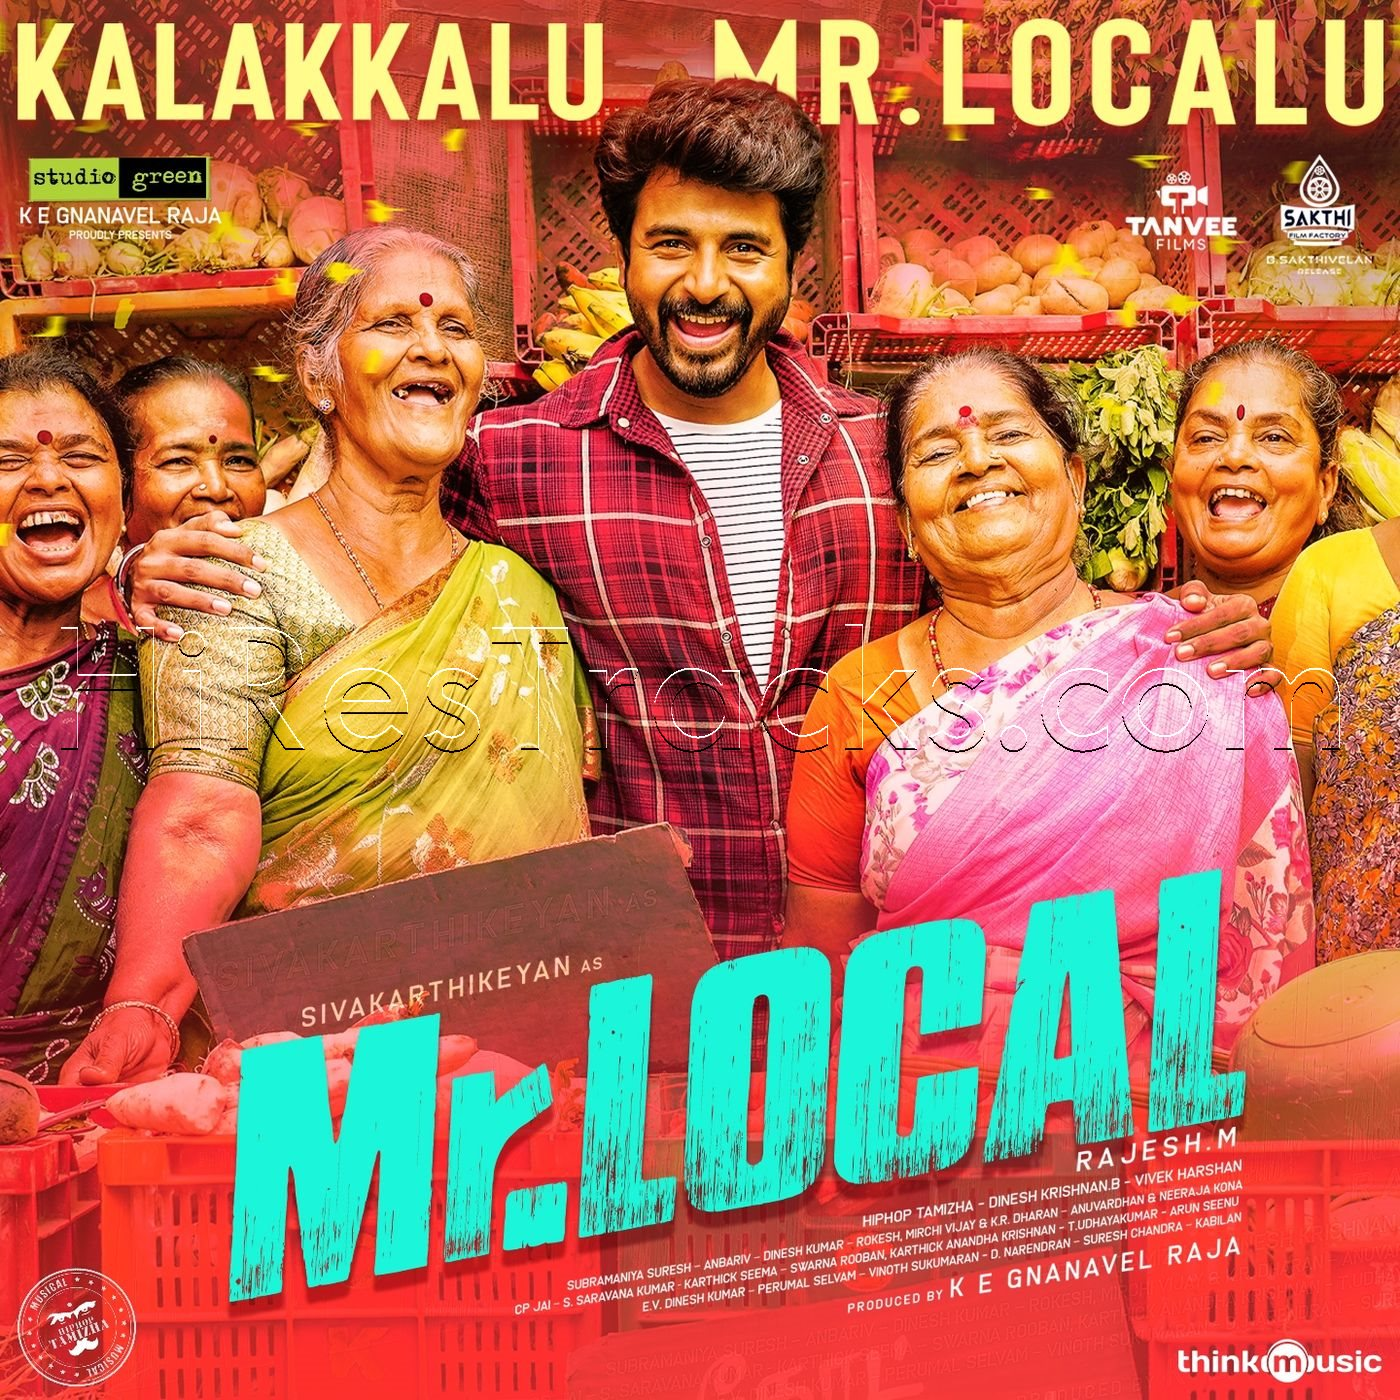 Kalakkalu Mr. Localu (From Mr. Local) – Single (2019)